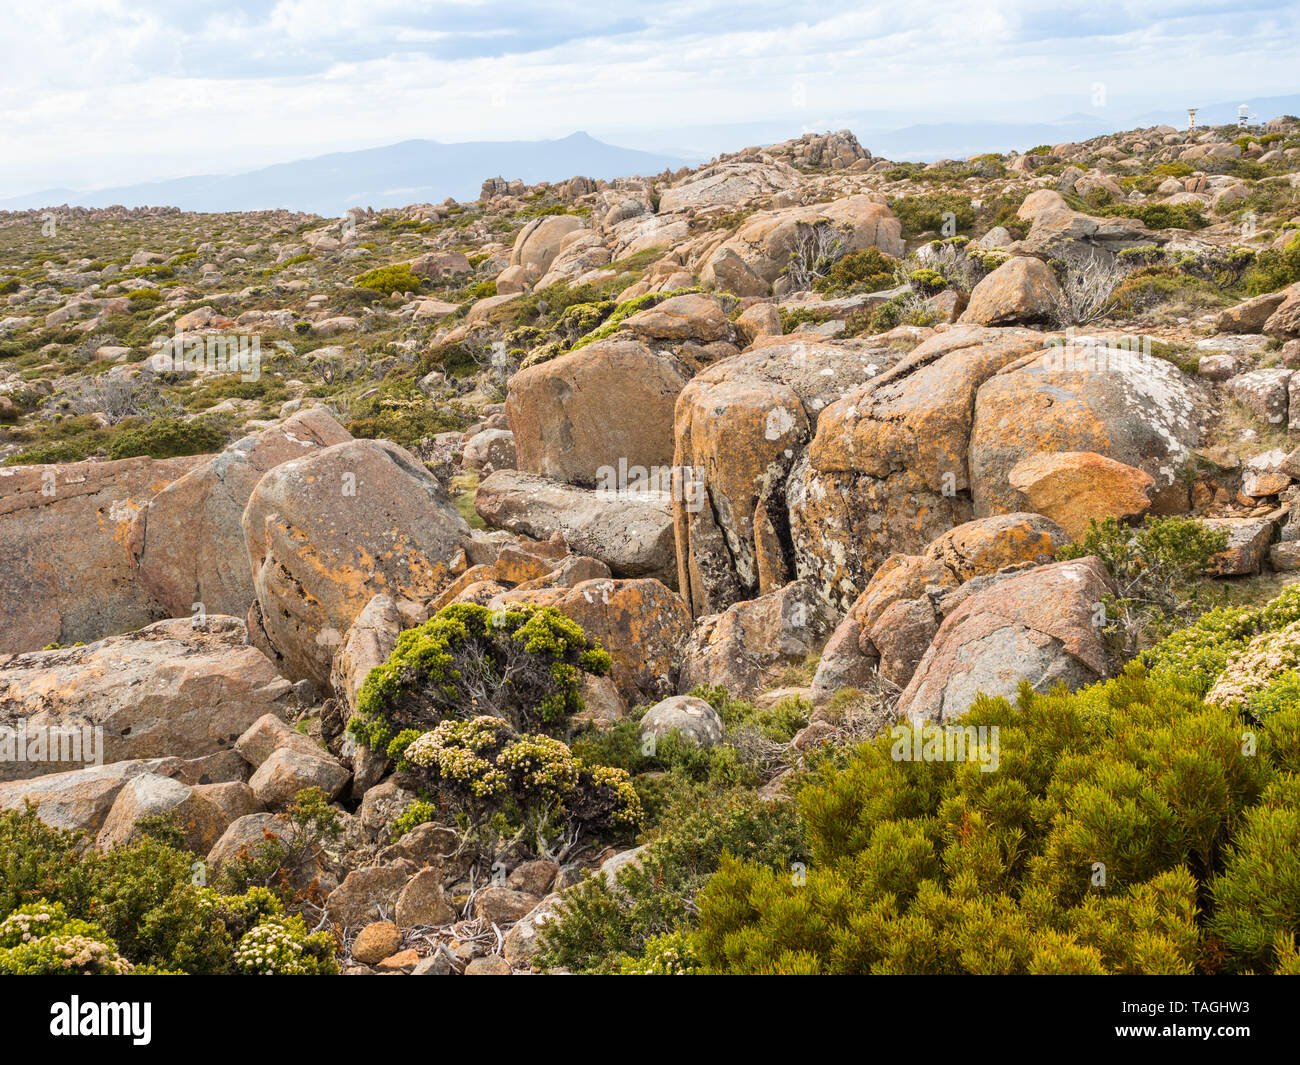 A plateau on Mount Wellington in the southeast coastal region of Tasmania, Australia. At the foothills of the mountain is much of Hobart, the capital  Stock Photo